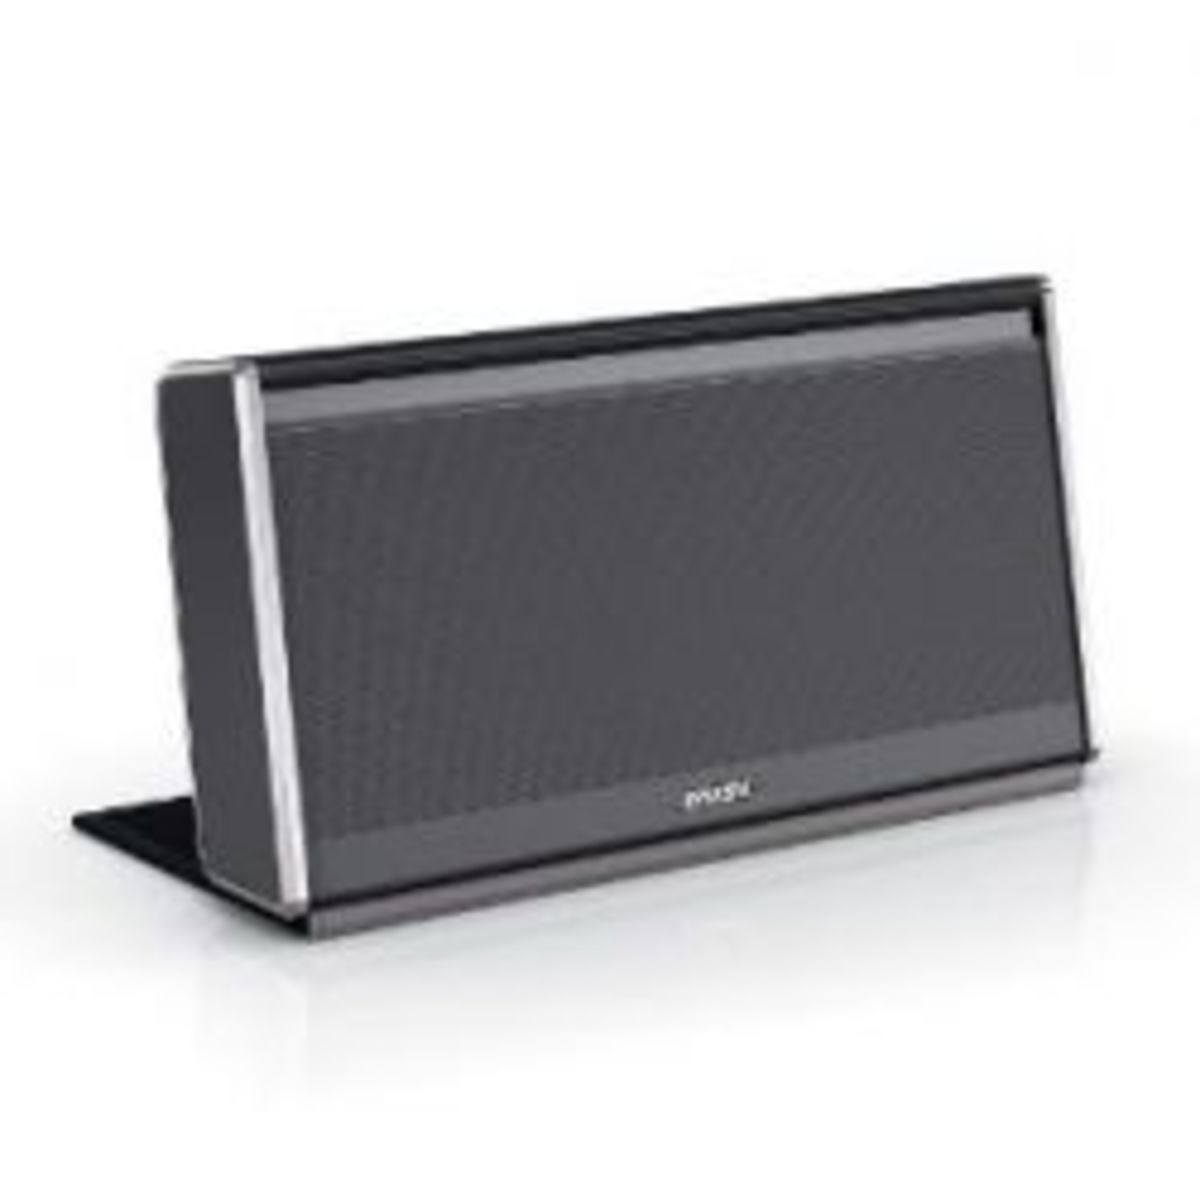 If you're willing to pay up, the Bose SoundLinke Mini Bluetooth Speaker takes your music listening experience to a new level with big performance in a small box speaker.